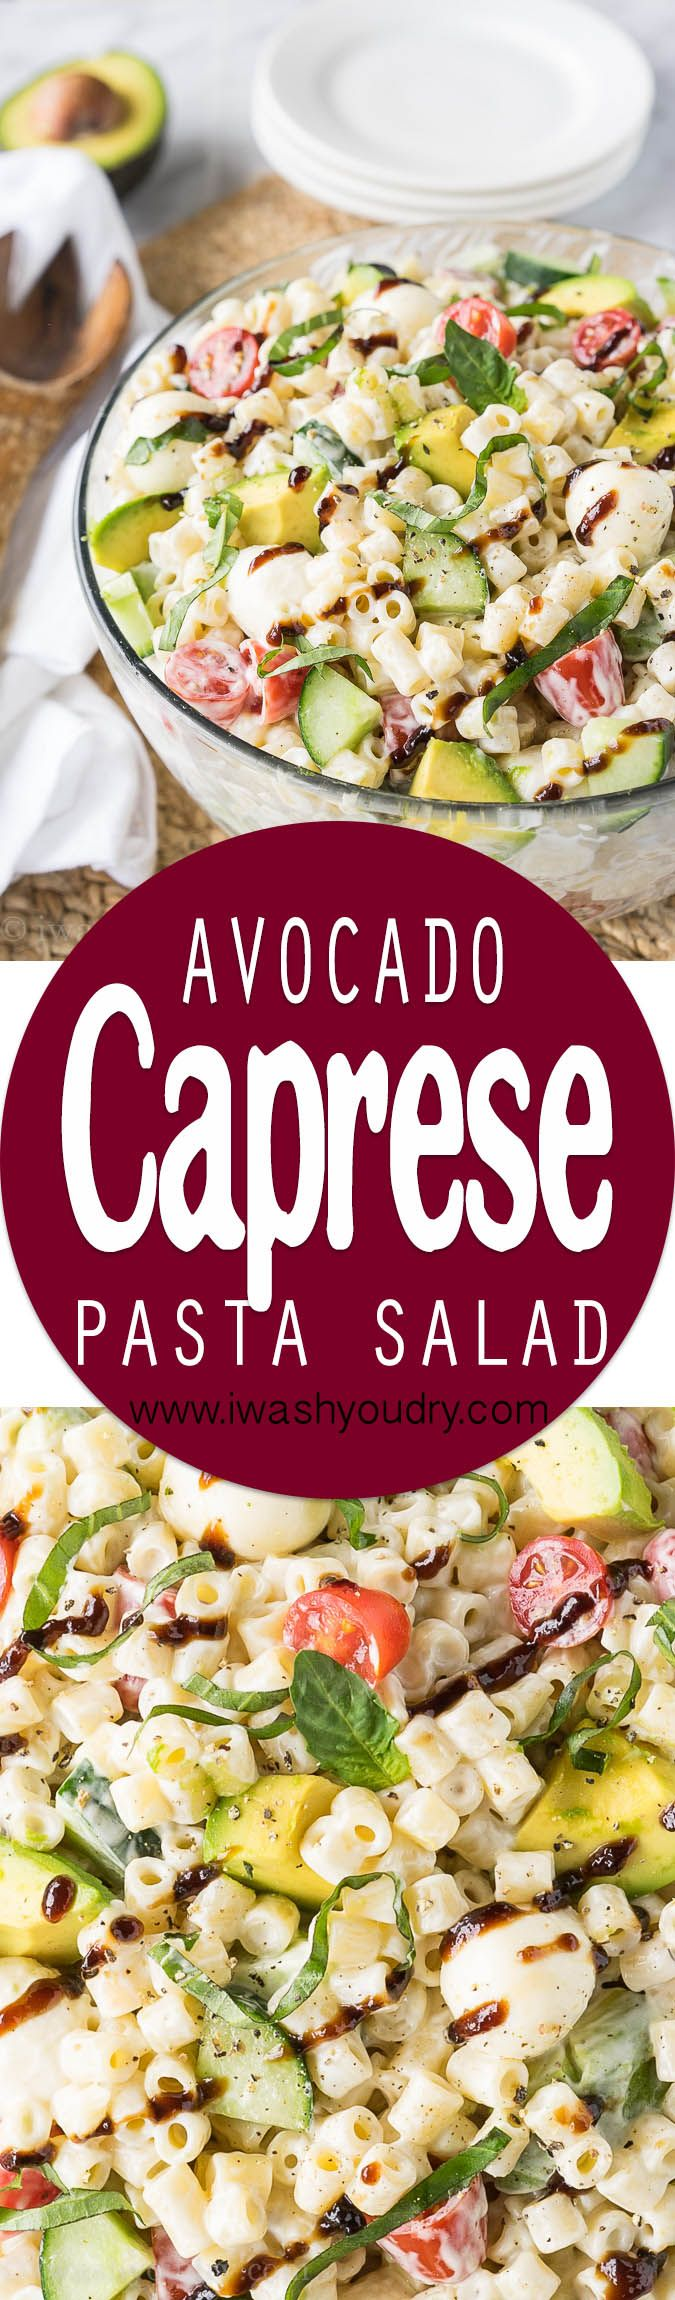 This Avocado Caprese Pasta Salad is a cold pasta salad that is perfect for parties and bbq's! Full of fresh veggies and creamy pasta!